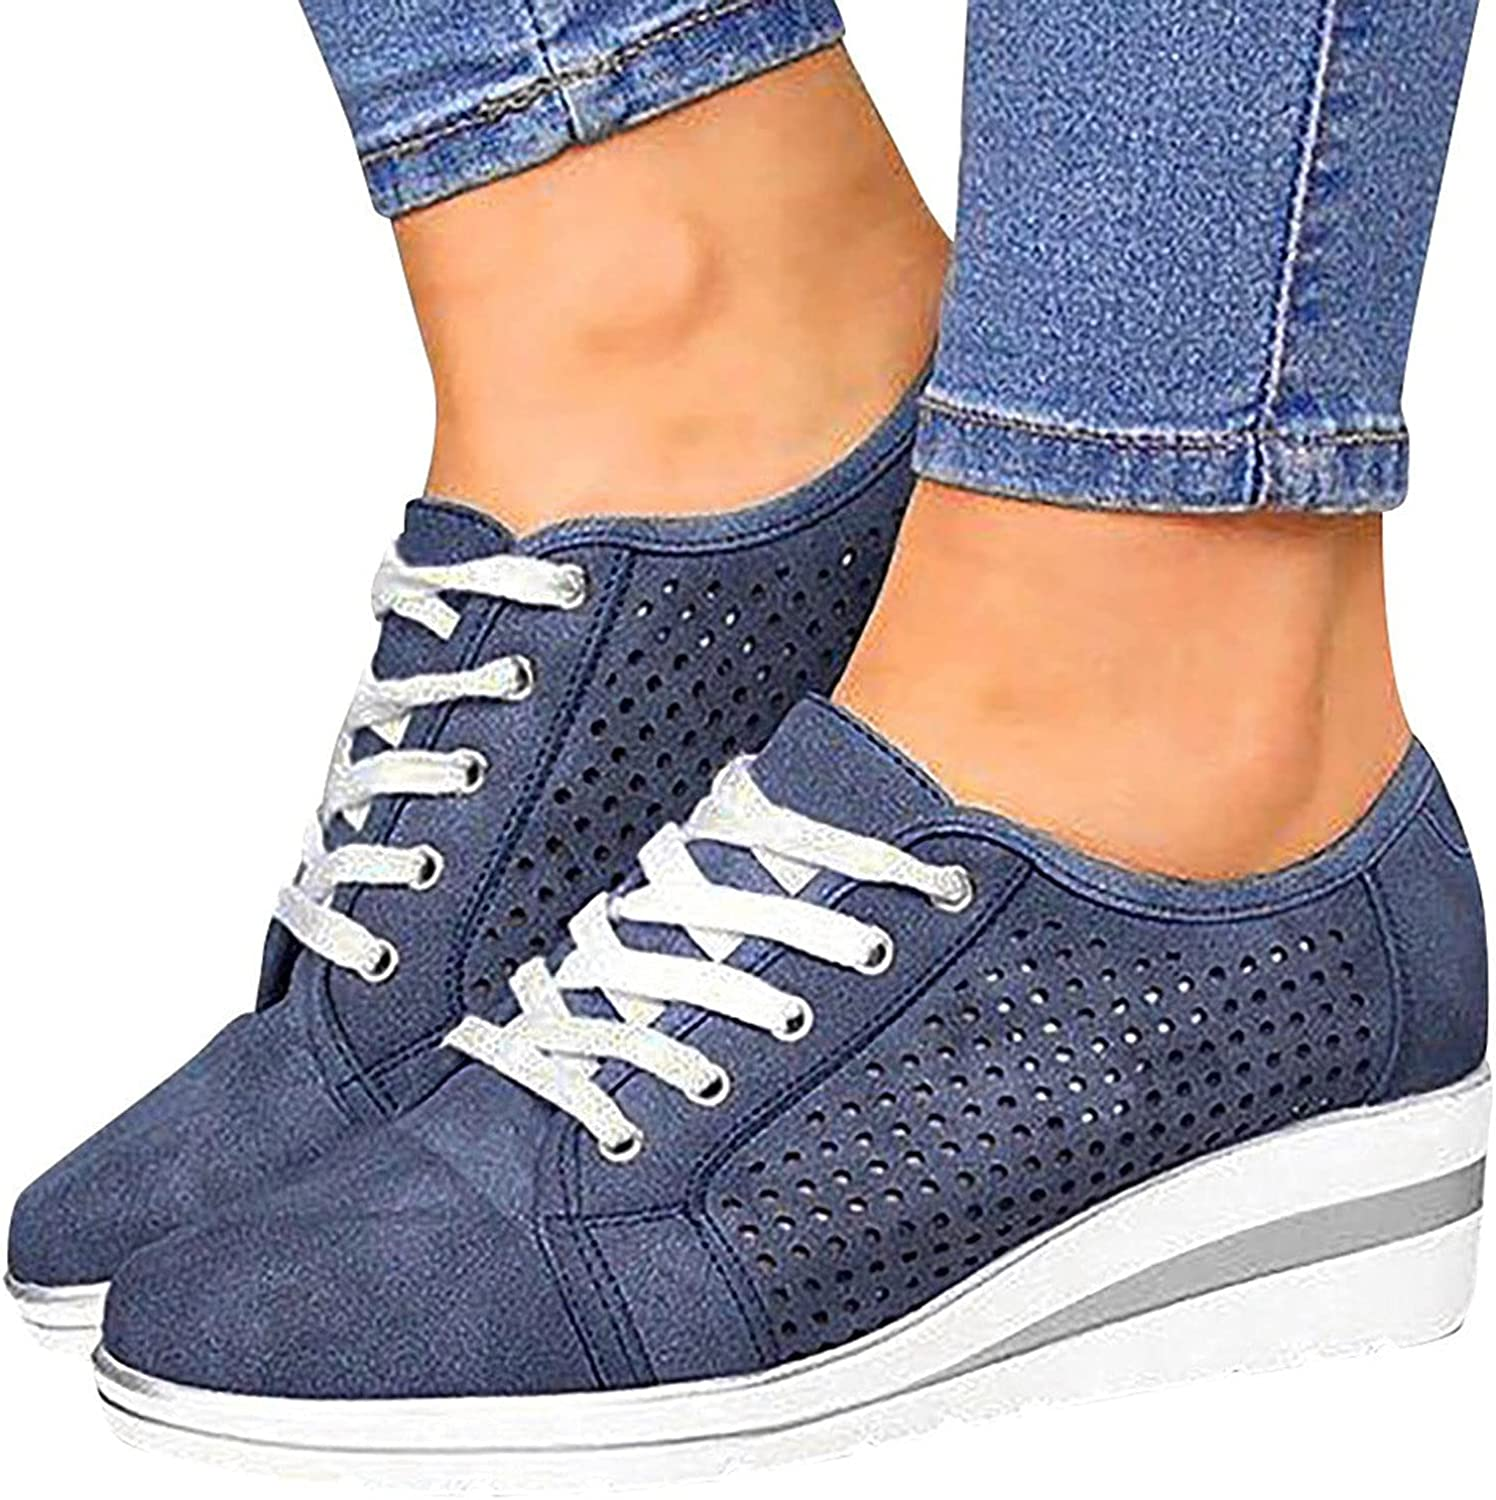 Slip On Sneakers High quality for Women Omaha Mall Wide Sh Shoes Walking Width